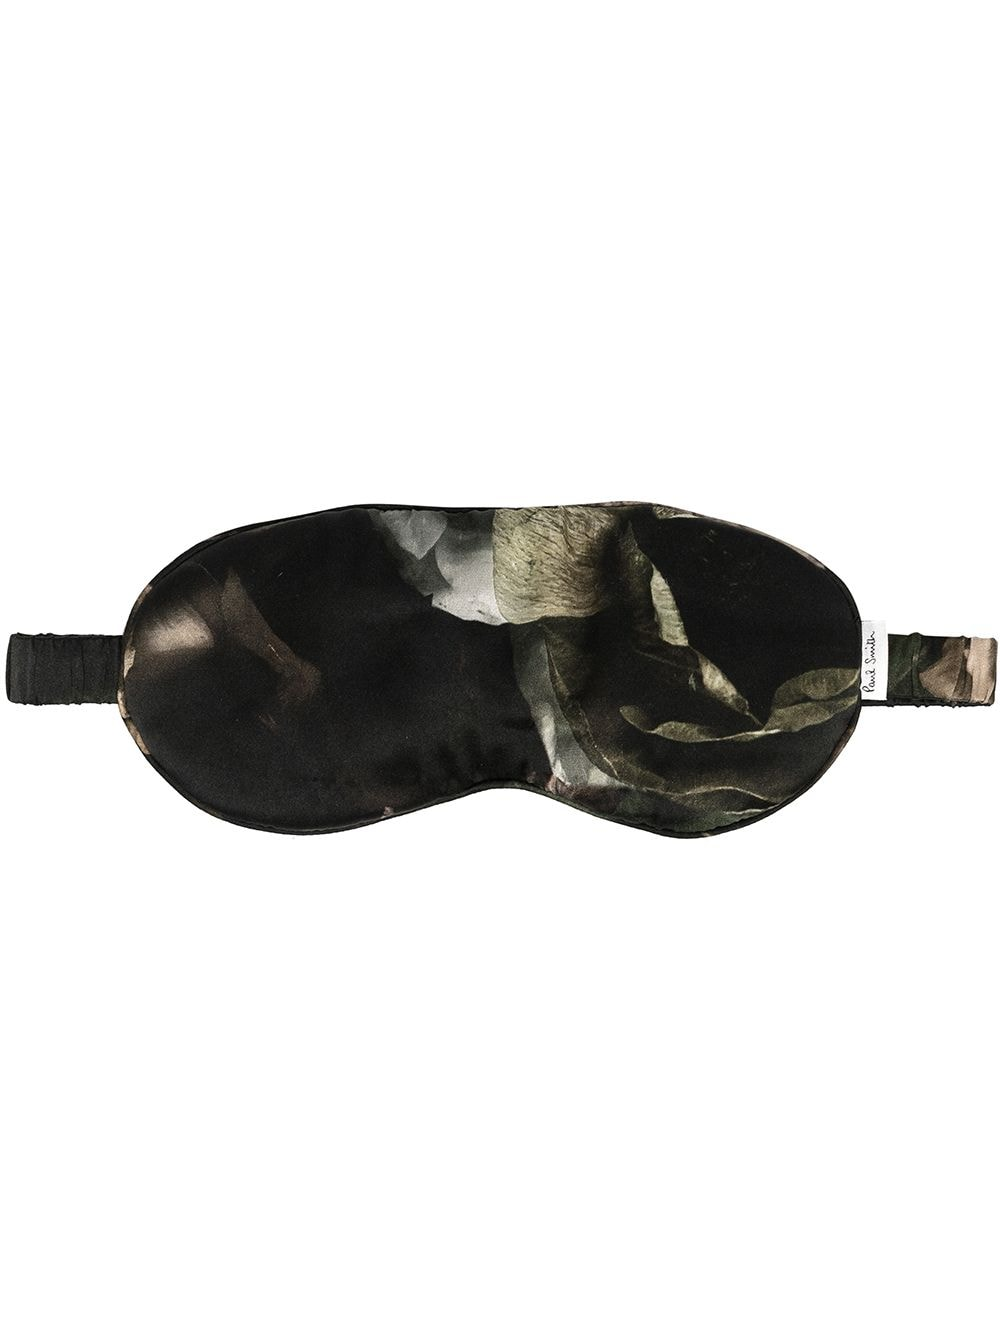 Paul Smith abstract print sleep mask - Black von Paul Smith